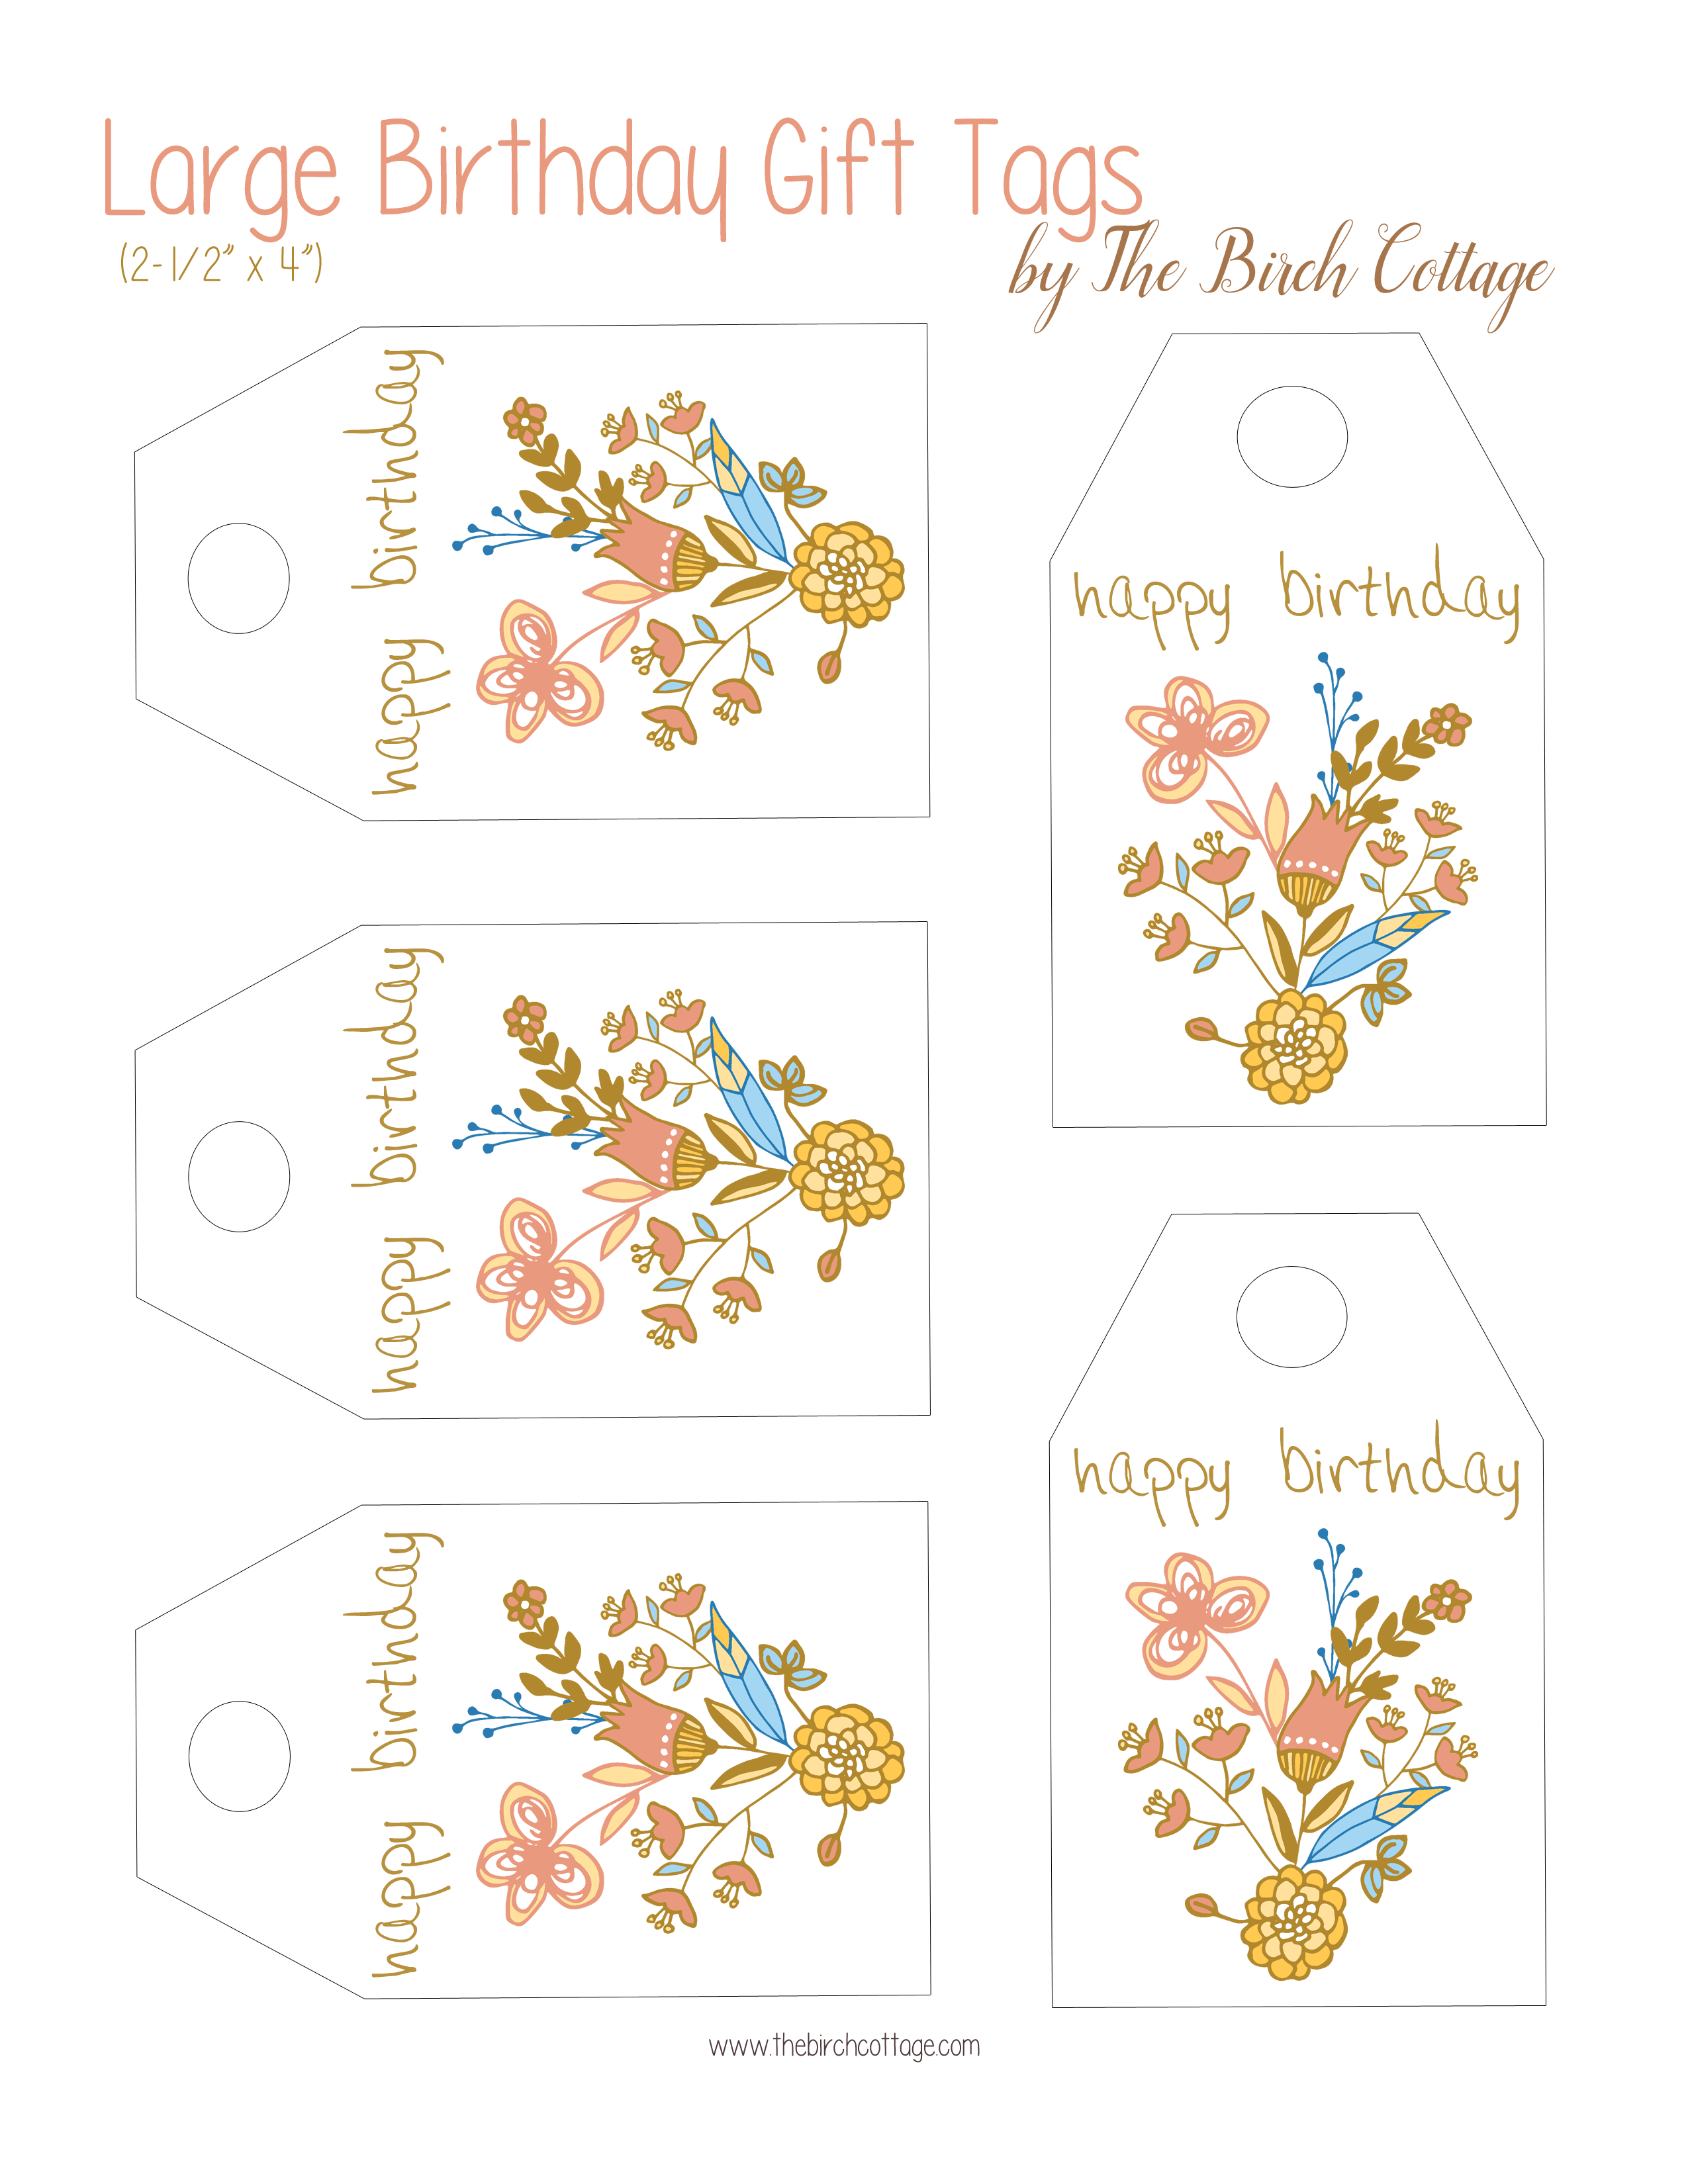 It is a photo of Happy Birthday Tag Printable with regard to colorful gift